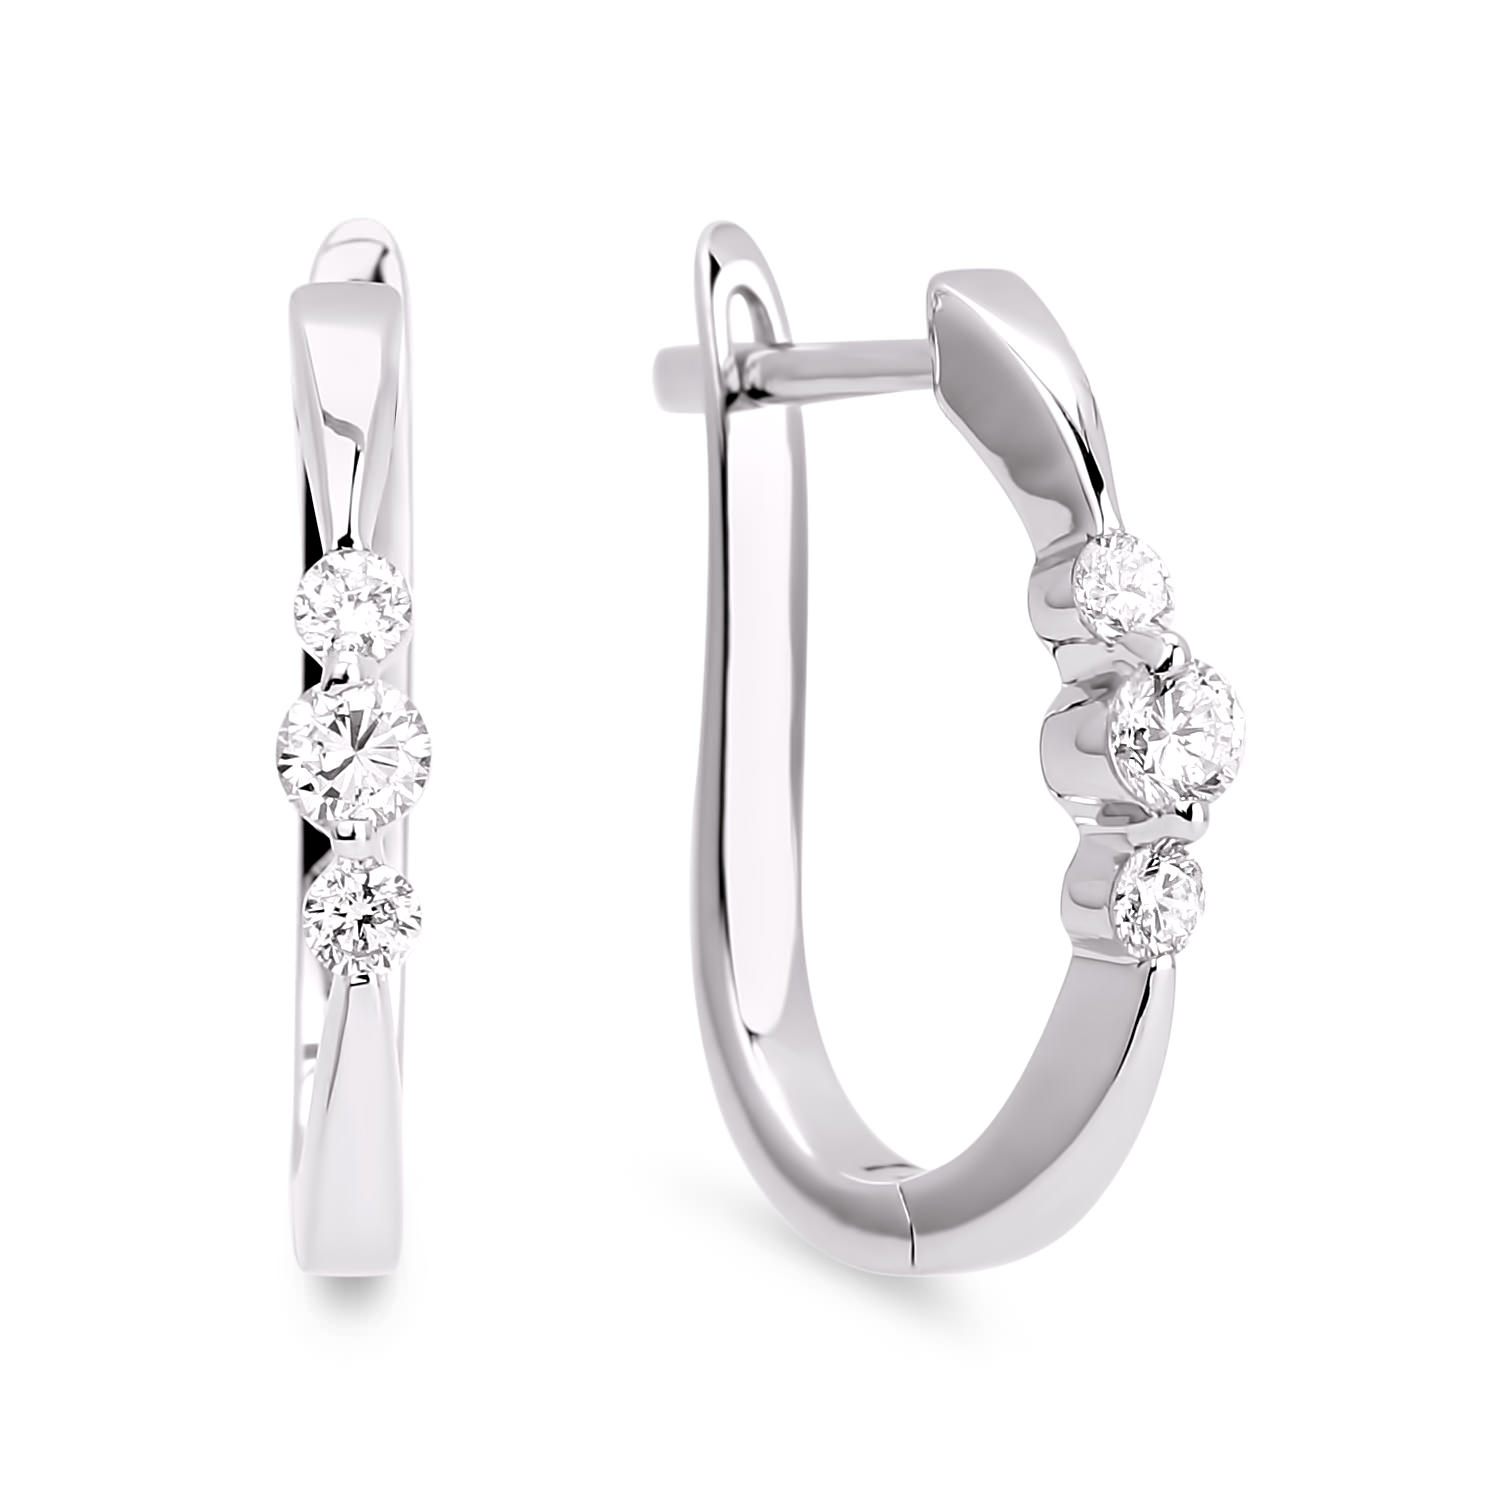 Diamond Hoop Earrings SGE102 (Earrings)